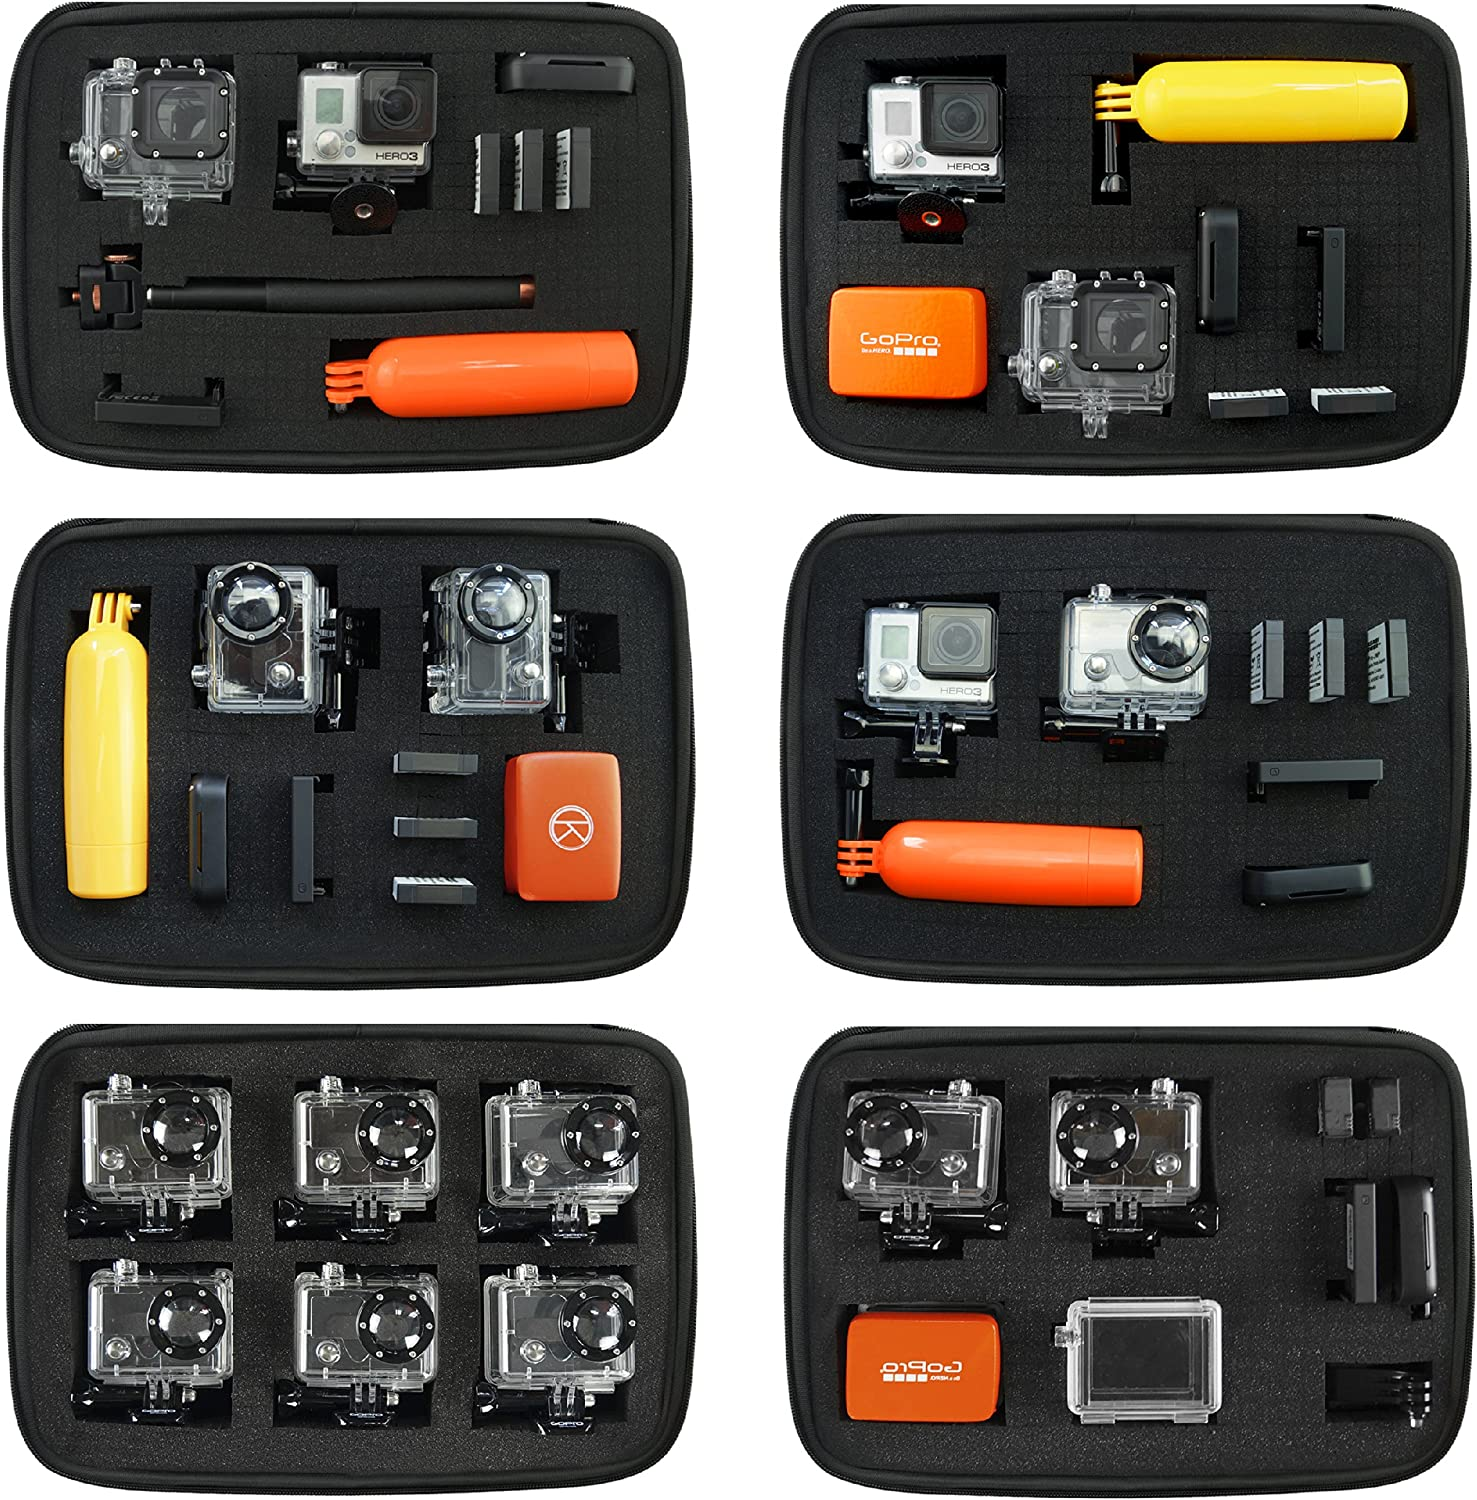 CAMKIX Customizable Magic Foam Medium Case 3+ 6 Silver Tailor The Foam to Your Unique Needs Session 3 1 and DJI Osmo Action Hero 4 2 5 Gopro Hero 7 Session Hero+ LCD Black Black